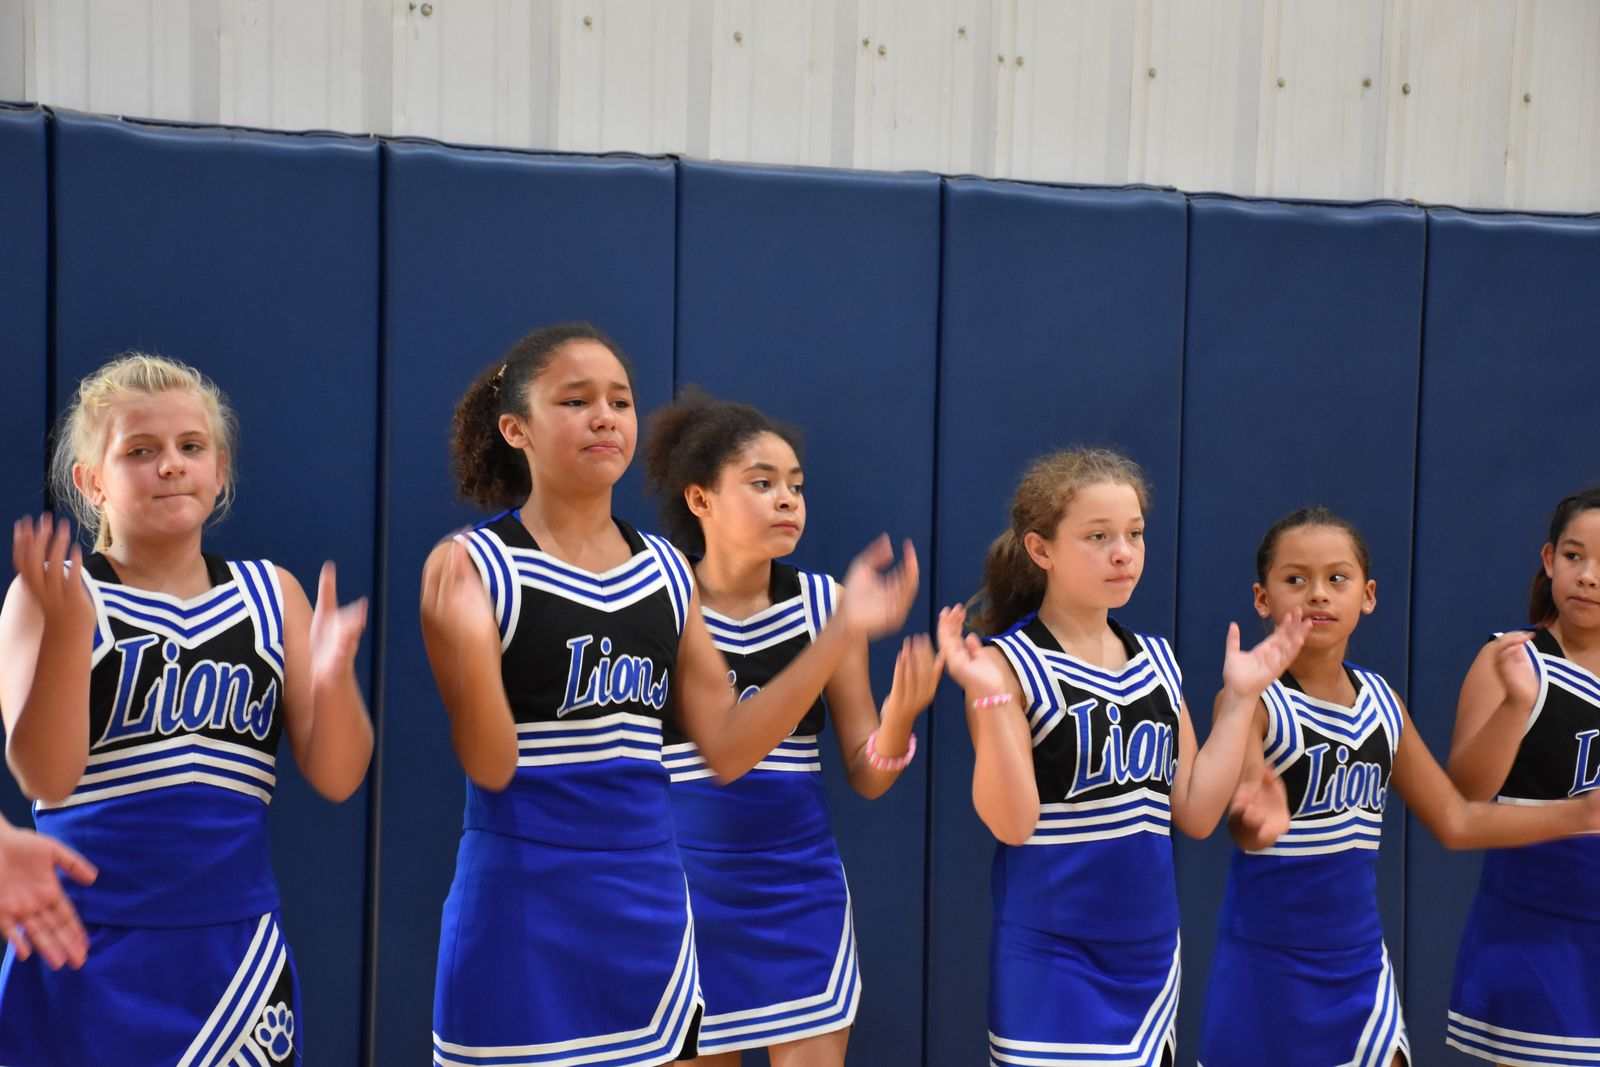 Gracemont Elementary Cheer!